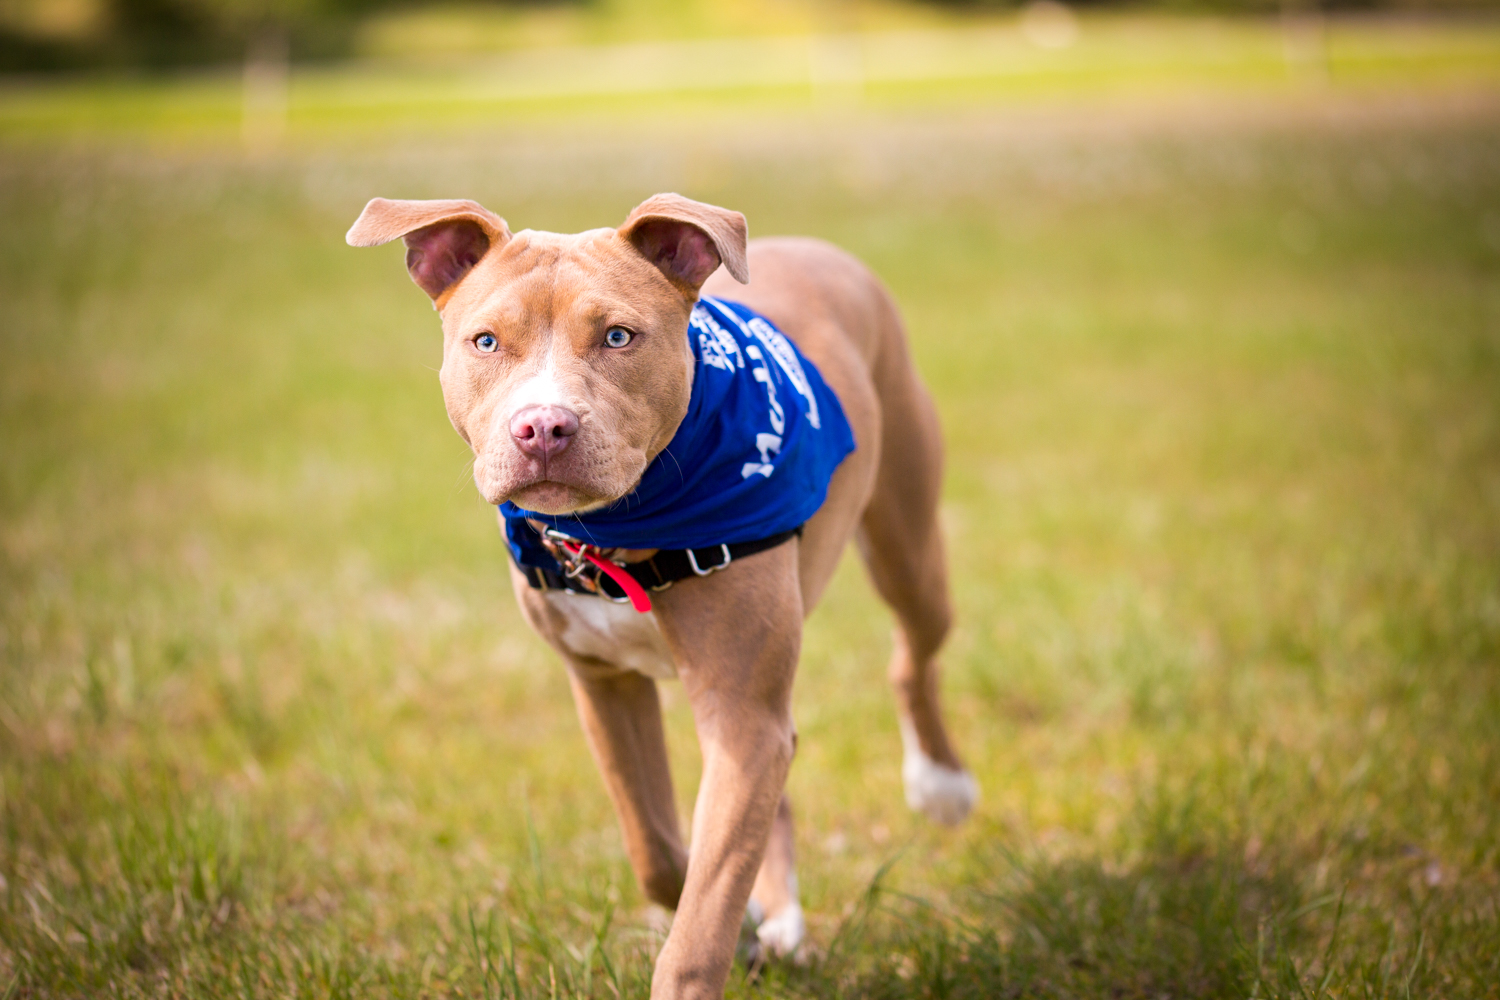 The_Dog_with_a_Bow_Photography_Cochrane_Humane_Mutt_Strut-2.jpg